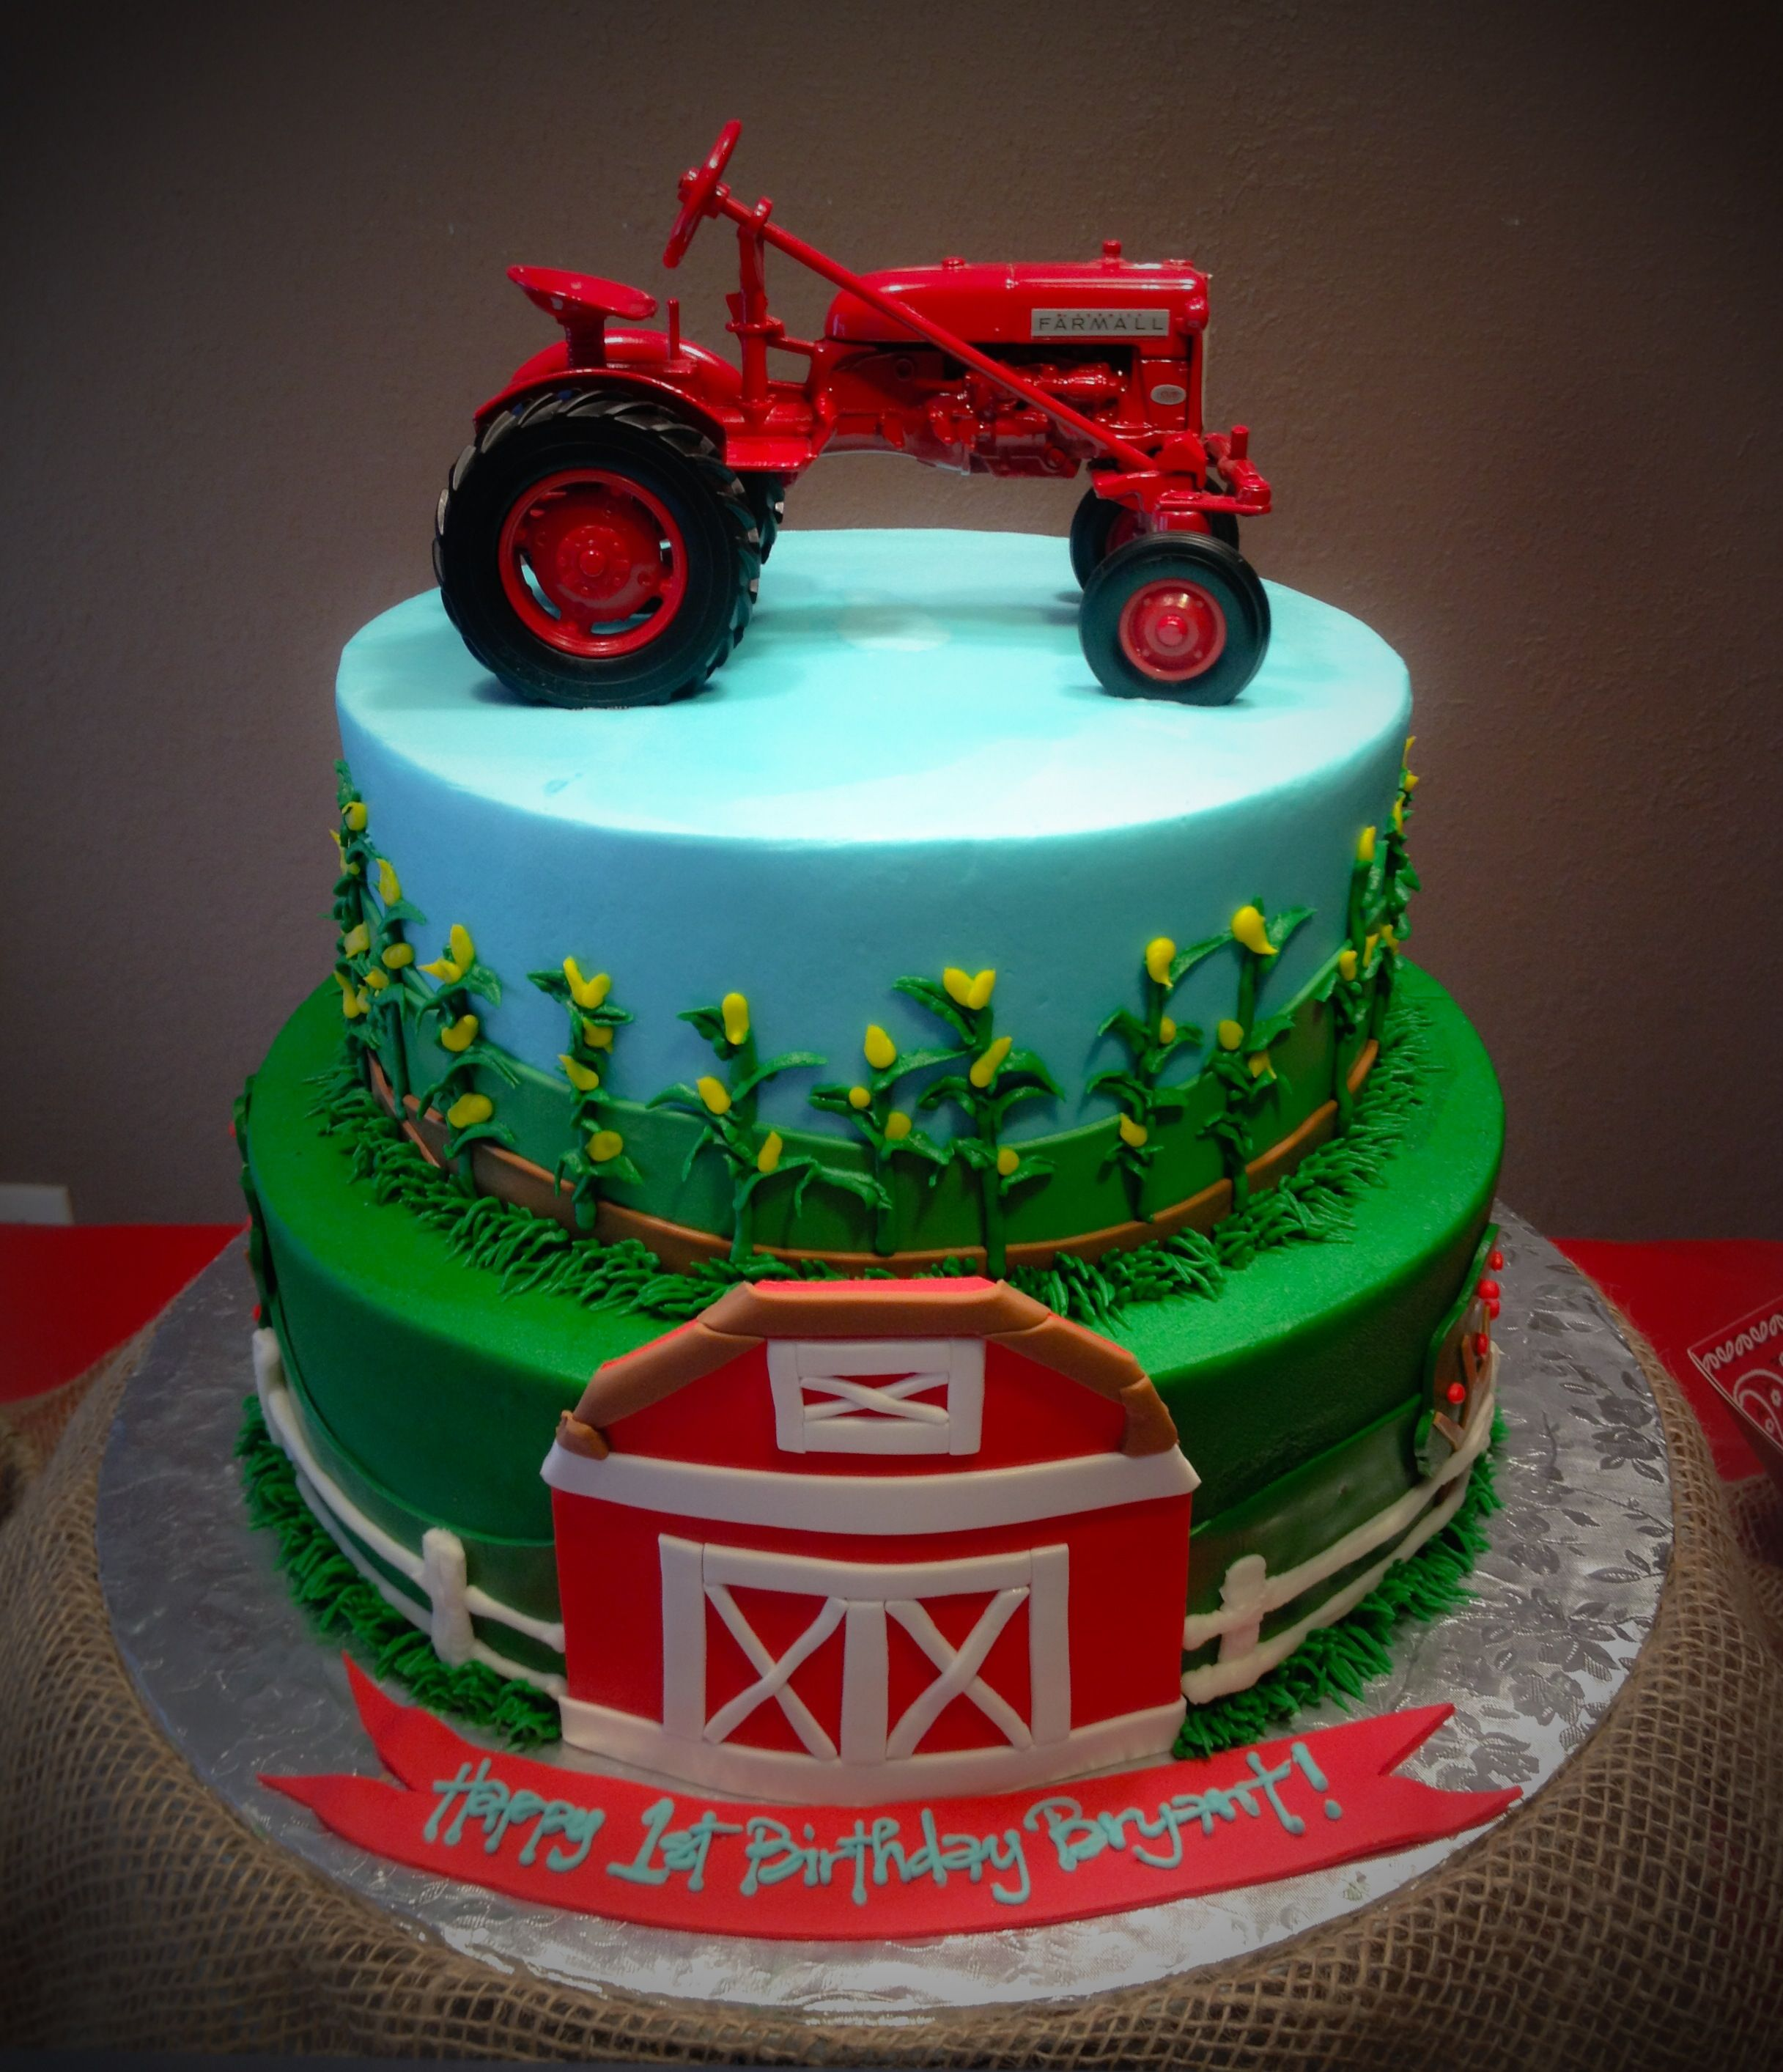 Images Of Tractor Birthday Cake : Farmall Tractor Cake by Blue Cake Co. Little Rock, AR ...